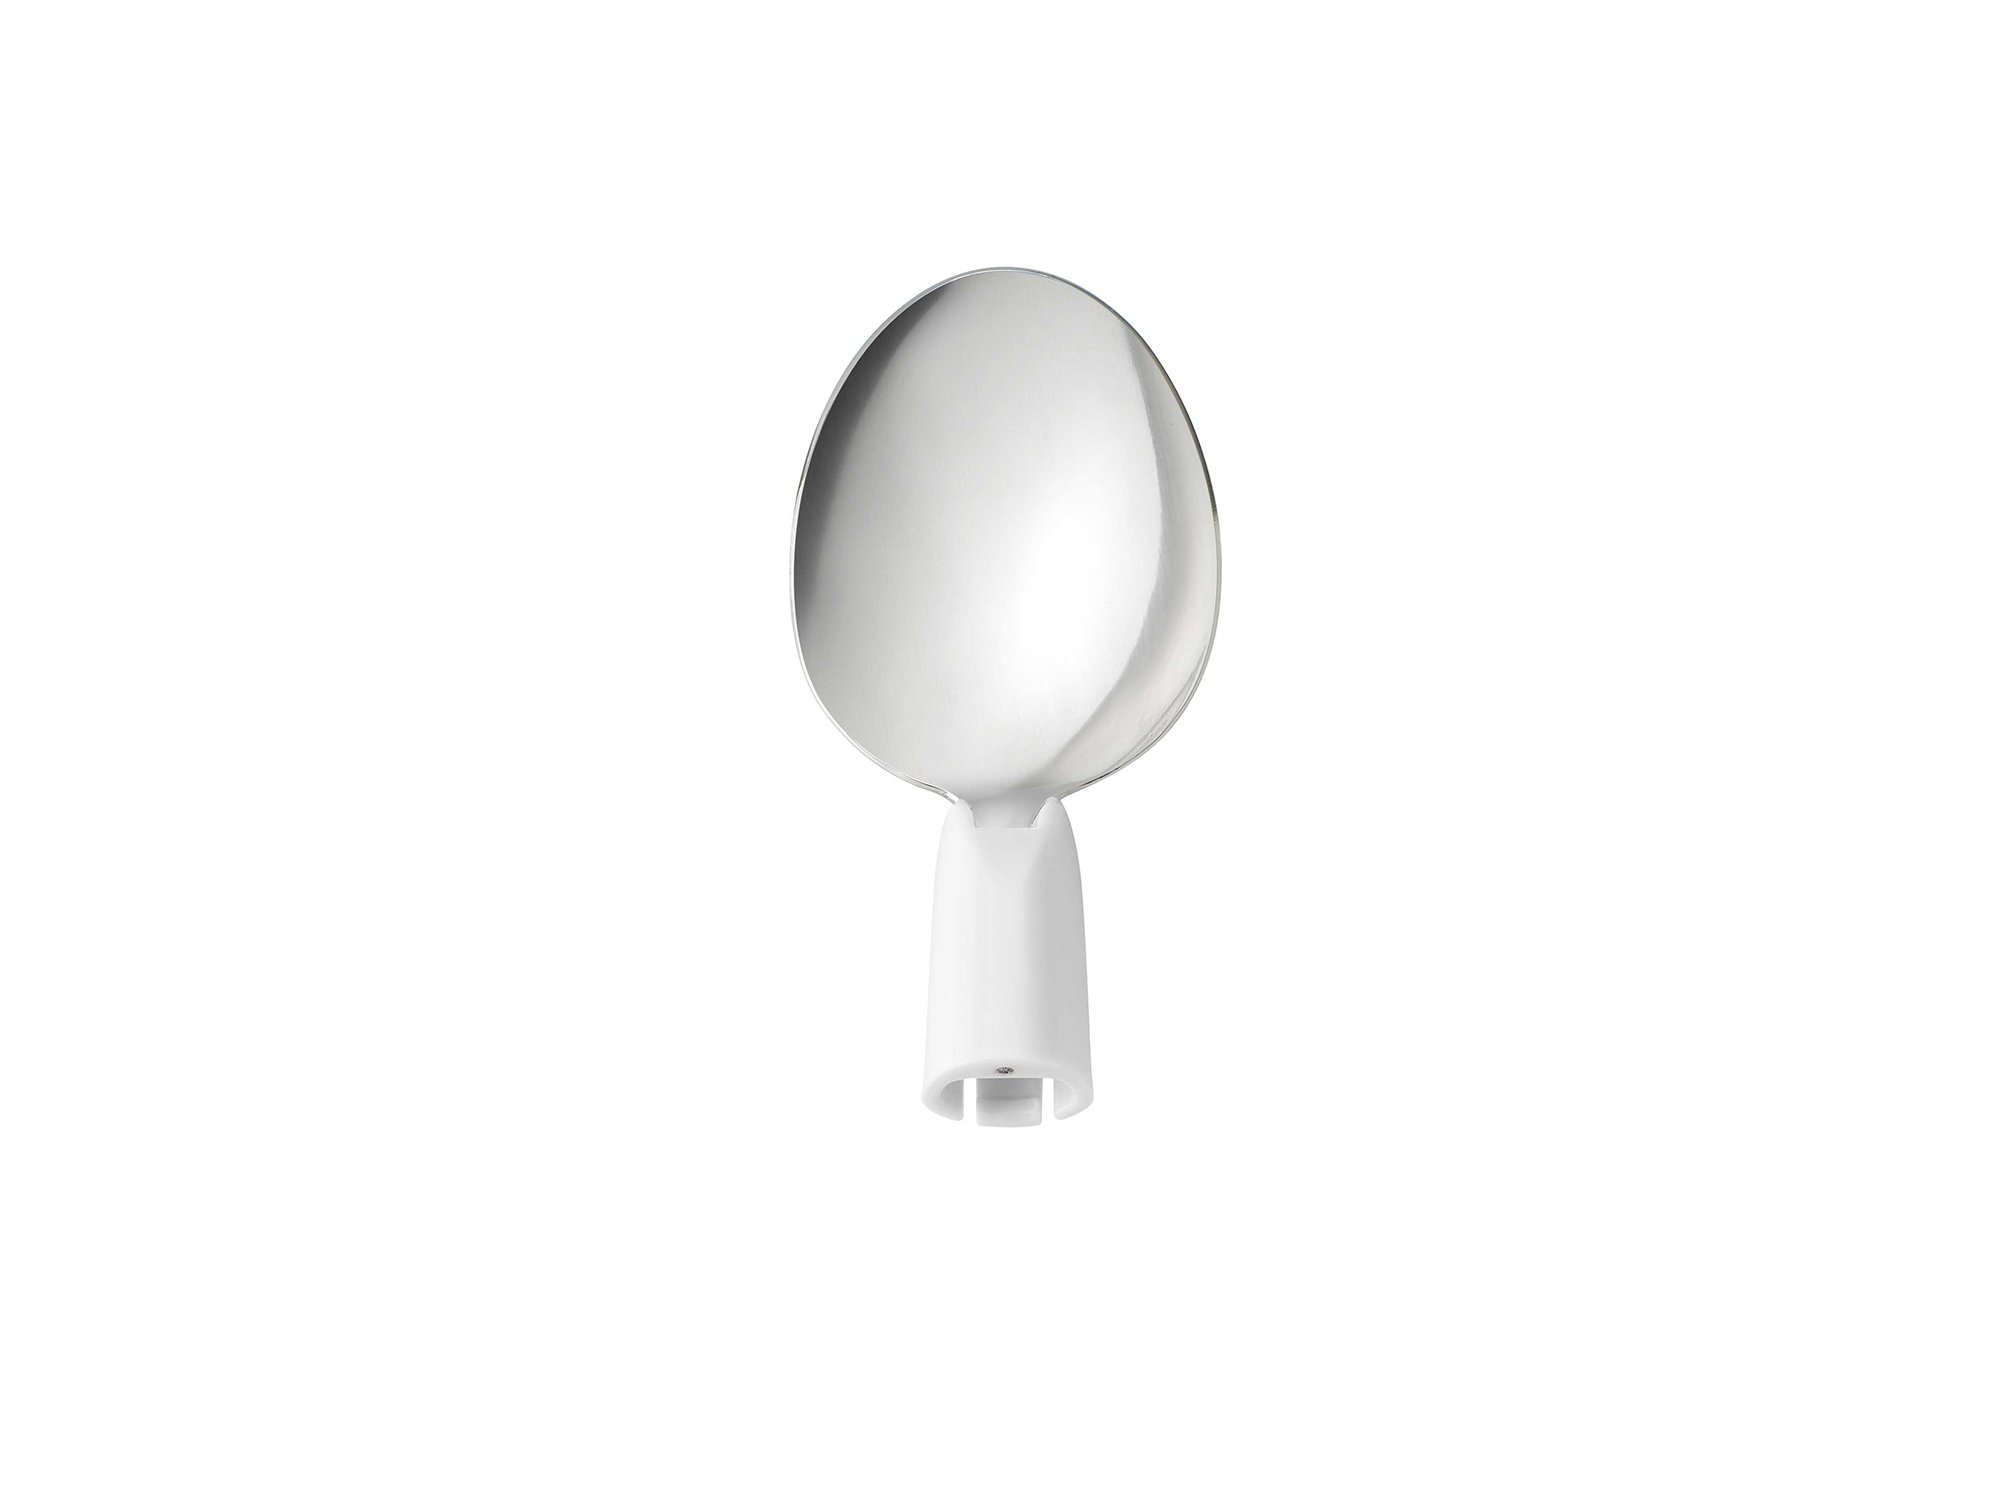 Liftware Steady Soup Spoon Attachment